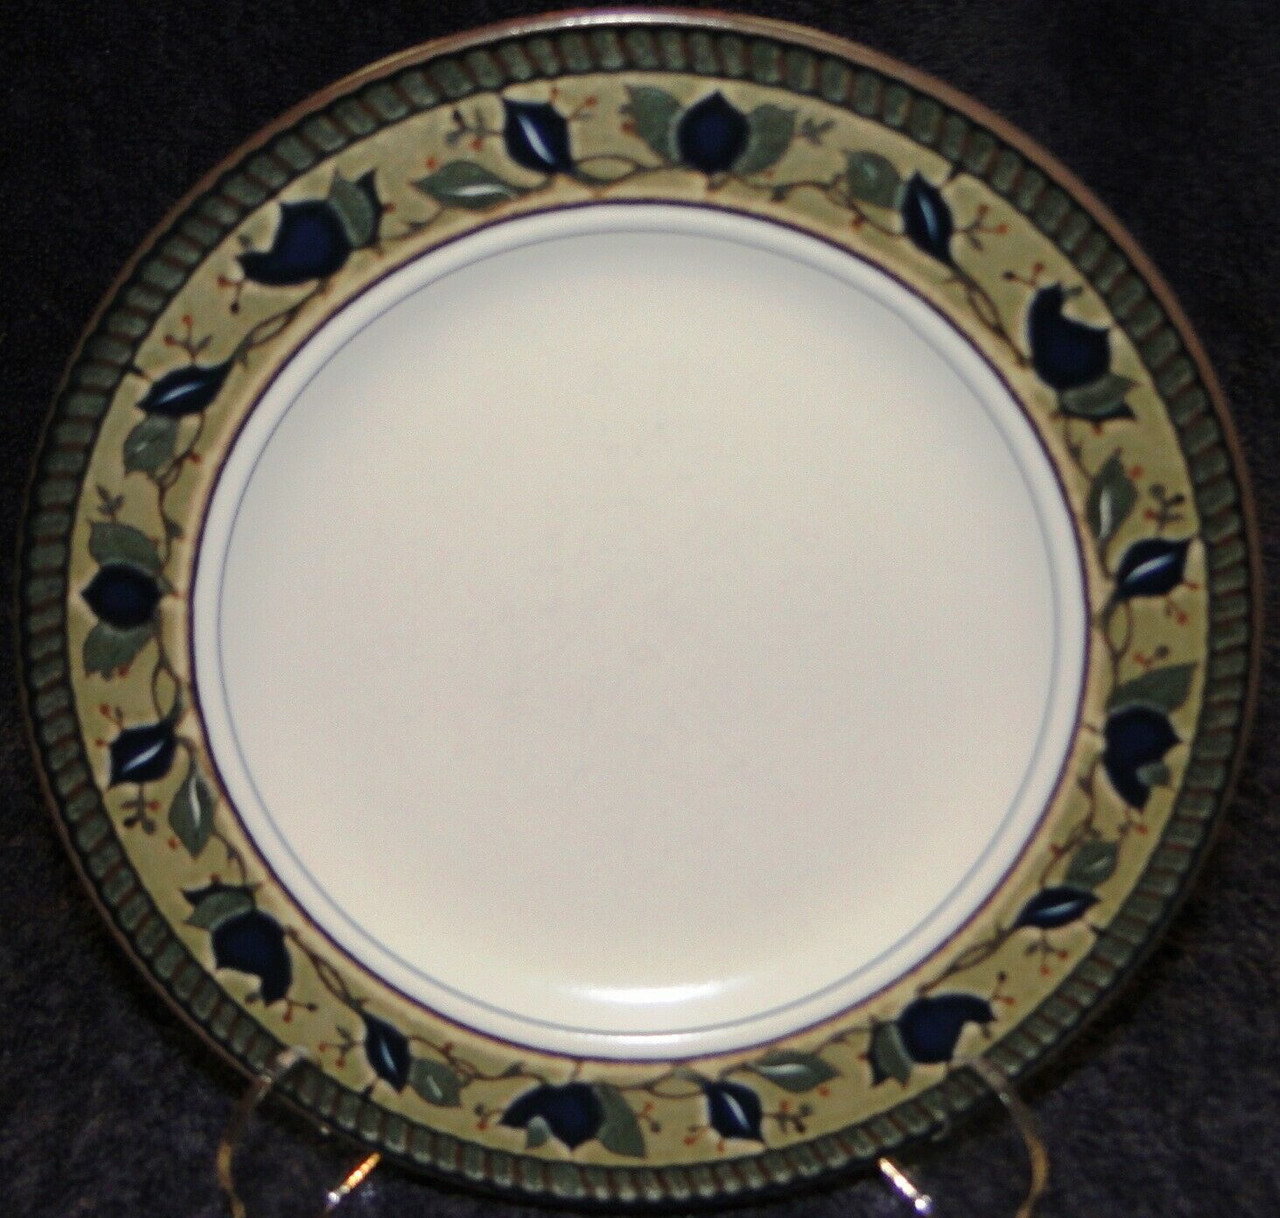 Mikasa Arabella Salad Plate 8 3 8 Cac01 Intaglio Dr Vintage Dinnerware Replacements